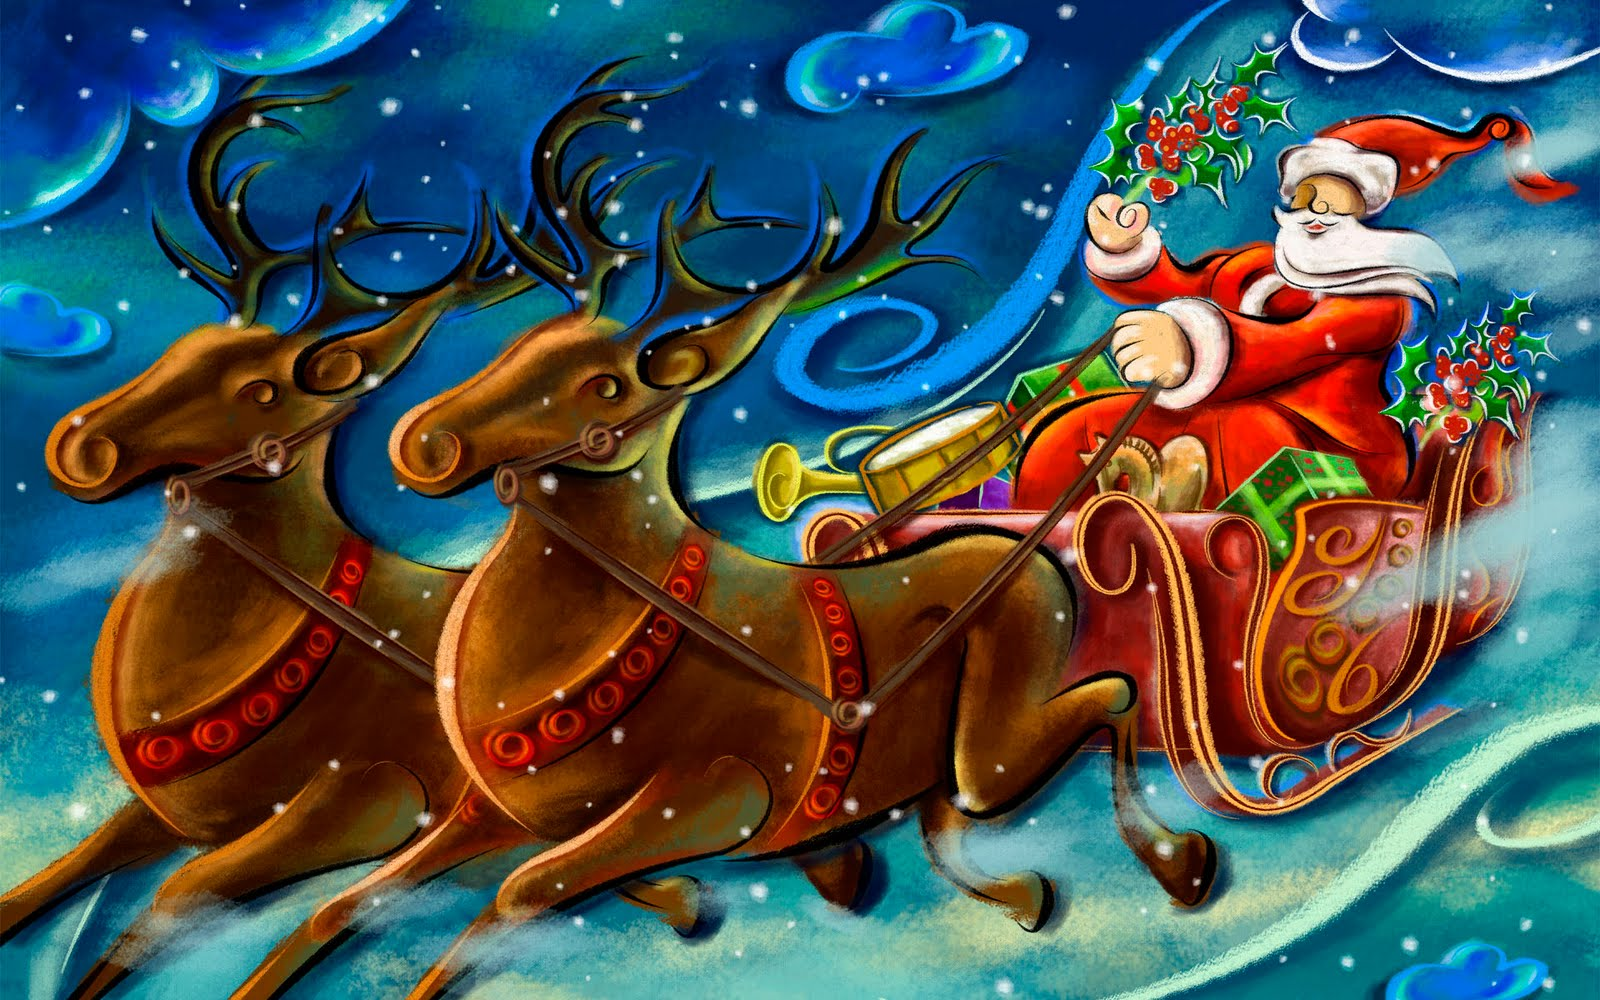 Best Christmas Desktop Wallpapers Collection